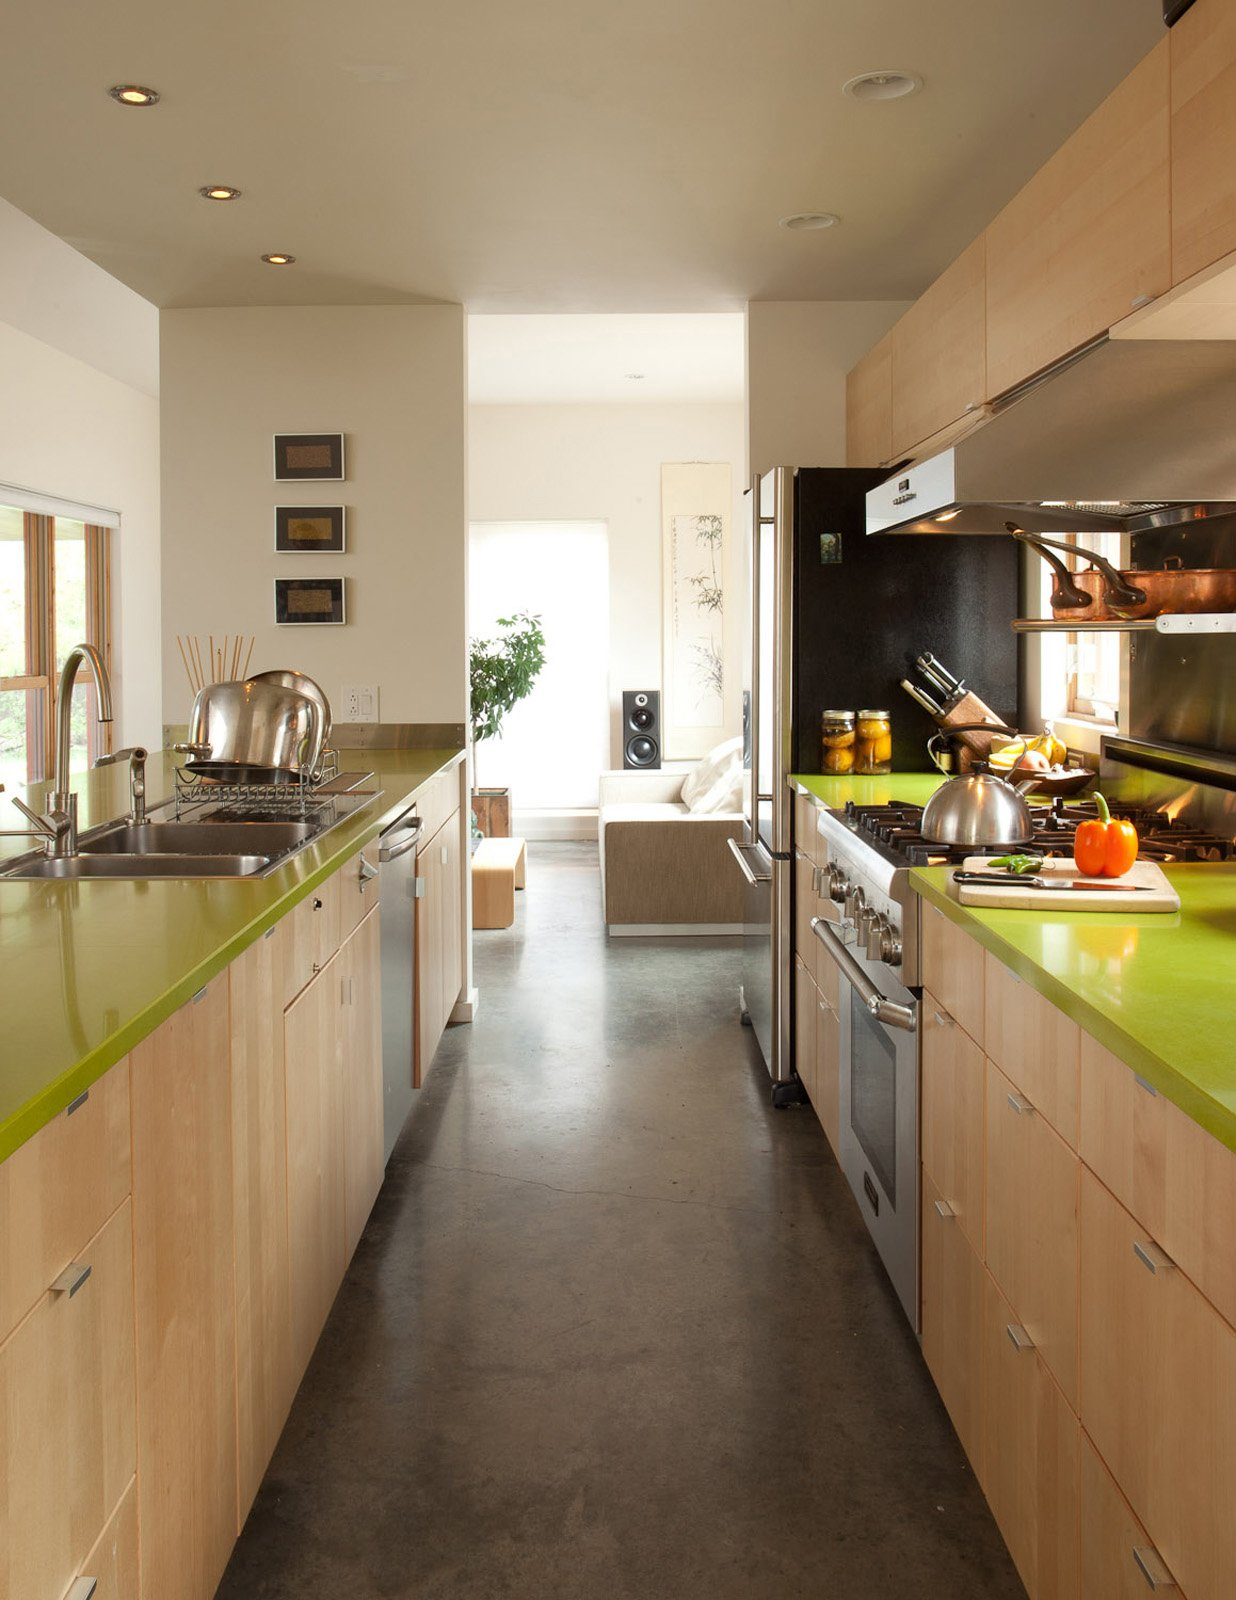 Here's another instance of a bit of bright color (on the countertops) giving an appealing accent to what is an otherwise pretty sedate palette. And if affordability is the name of the game, often a splash of color is more achievable than a spendy material.